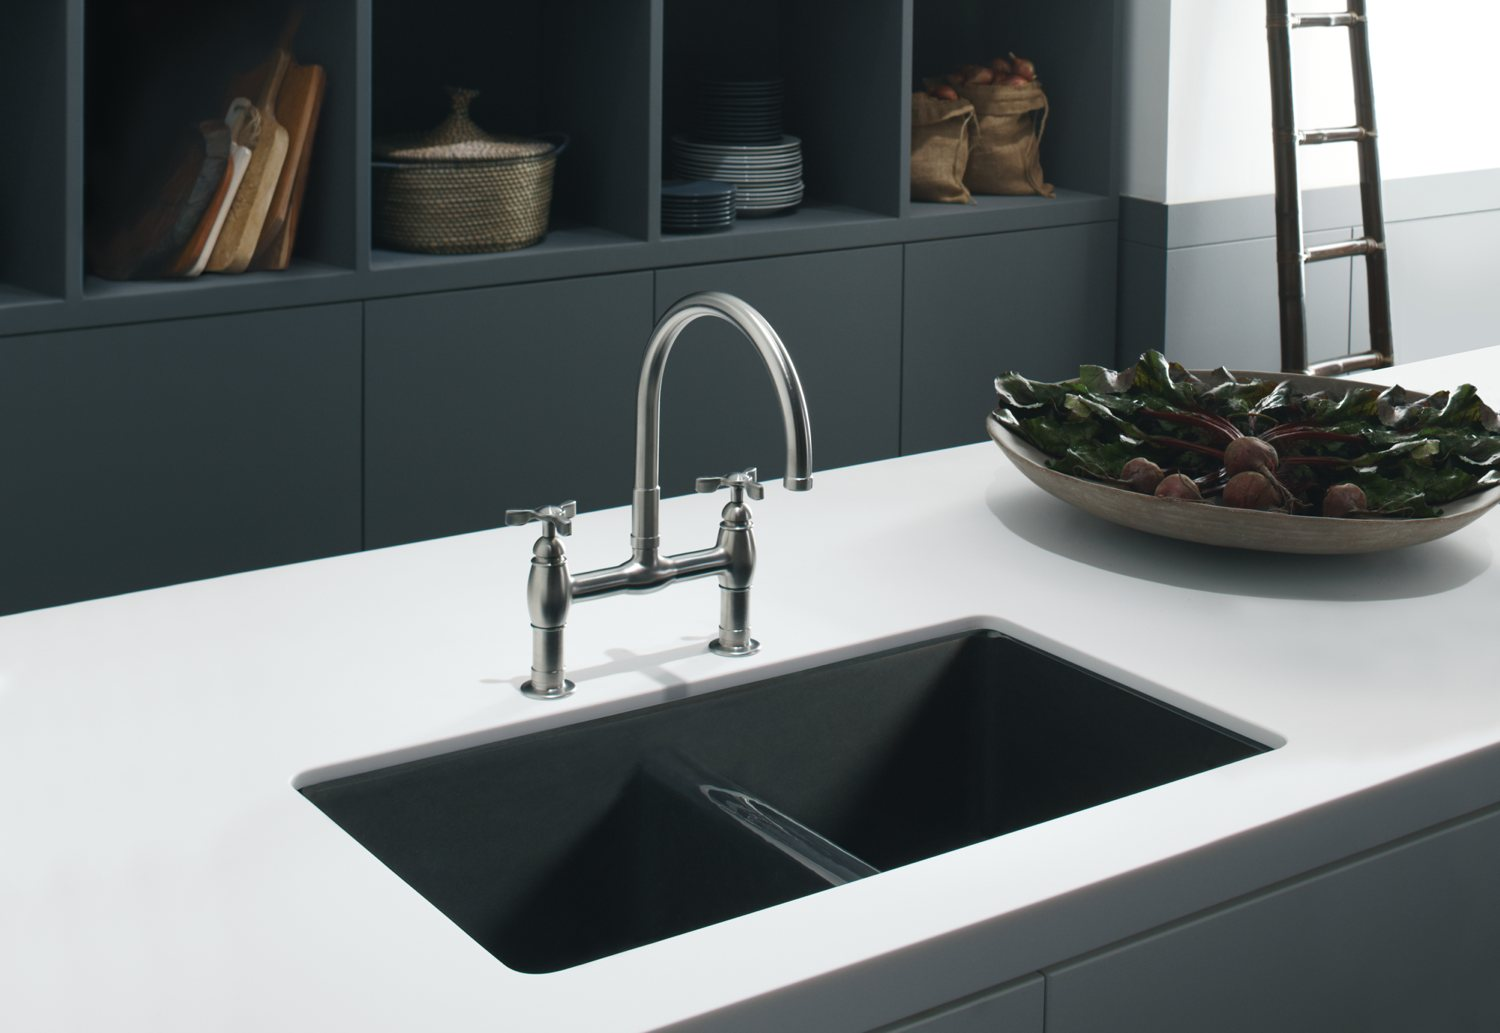 bridge faucets for kitchen roll up cabinet doors kohler contemporary - house furniture